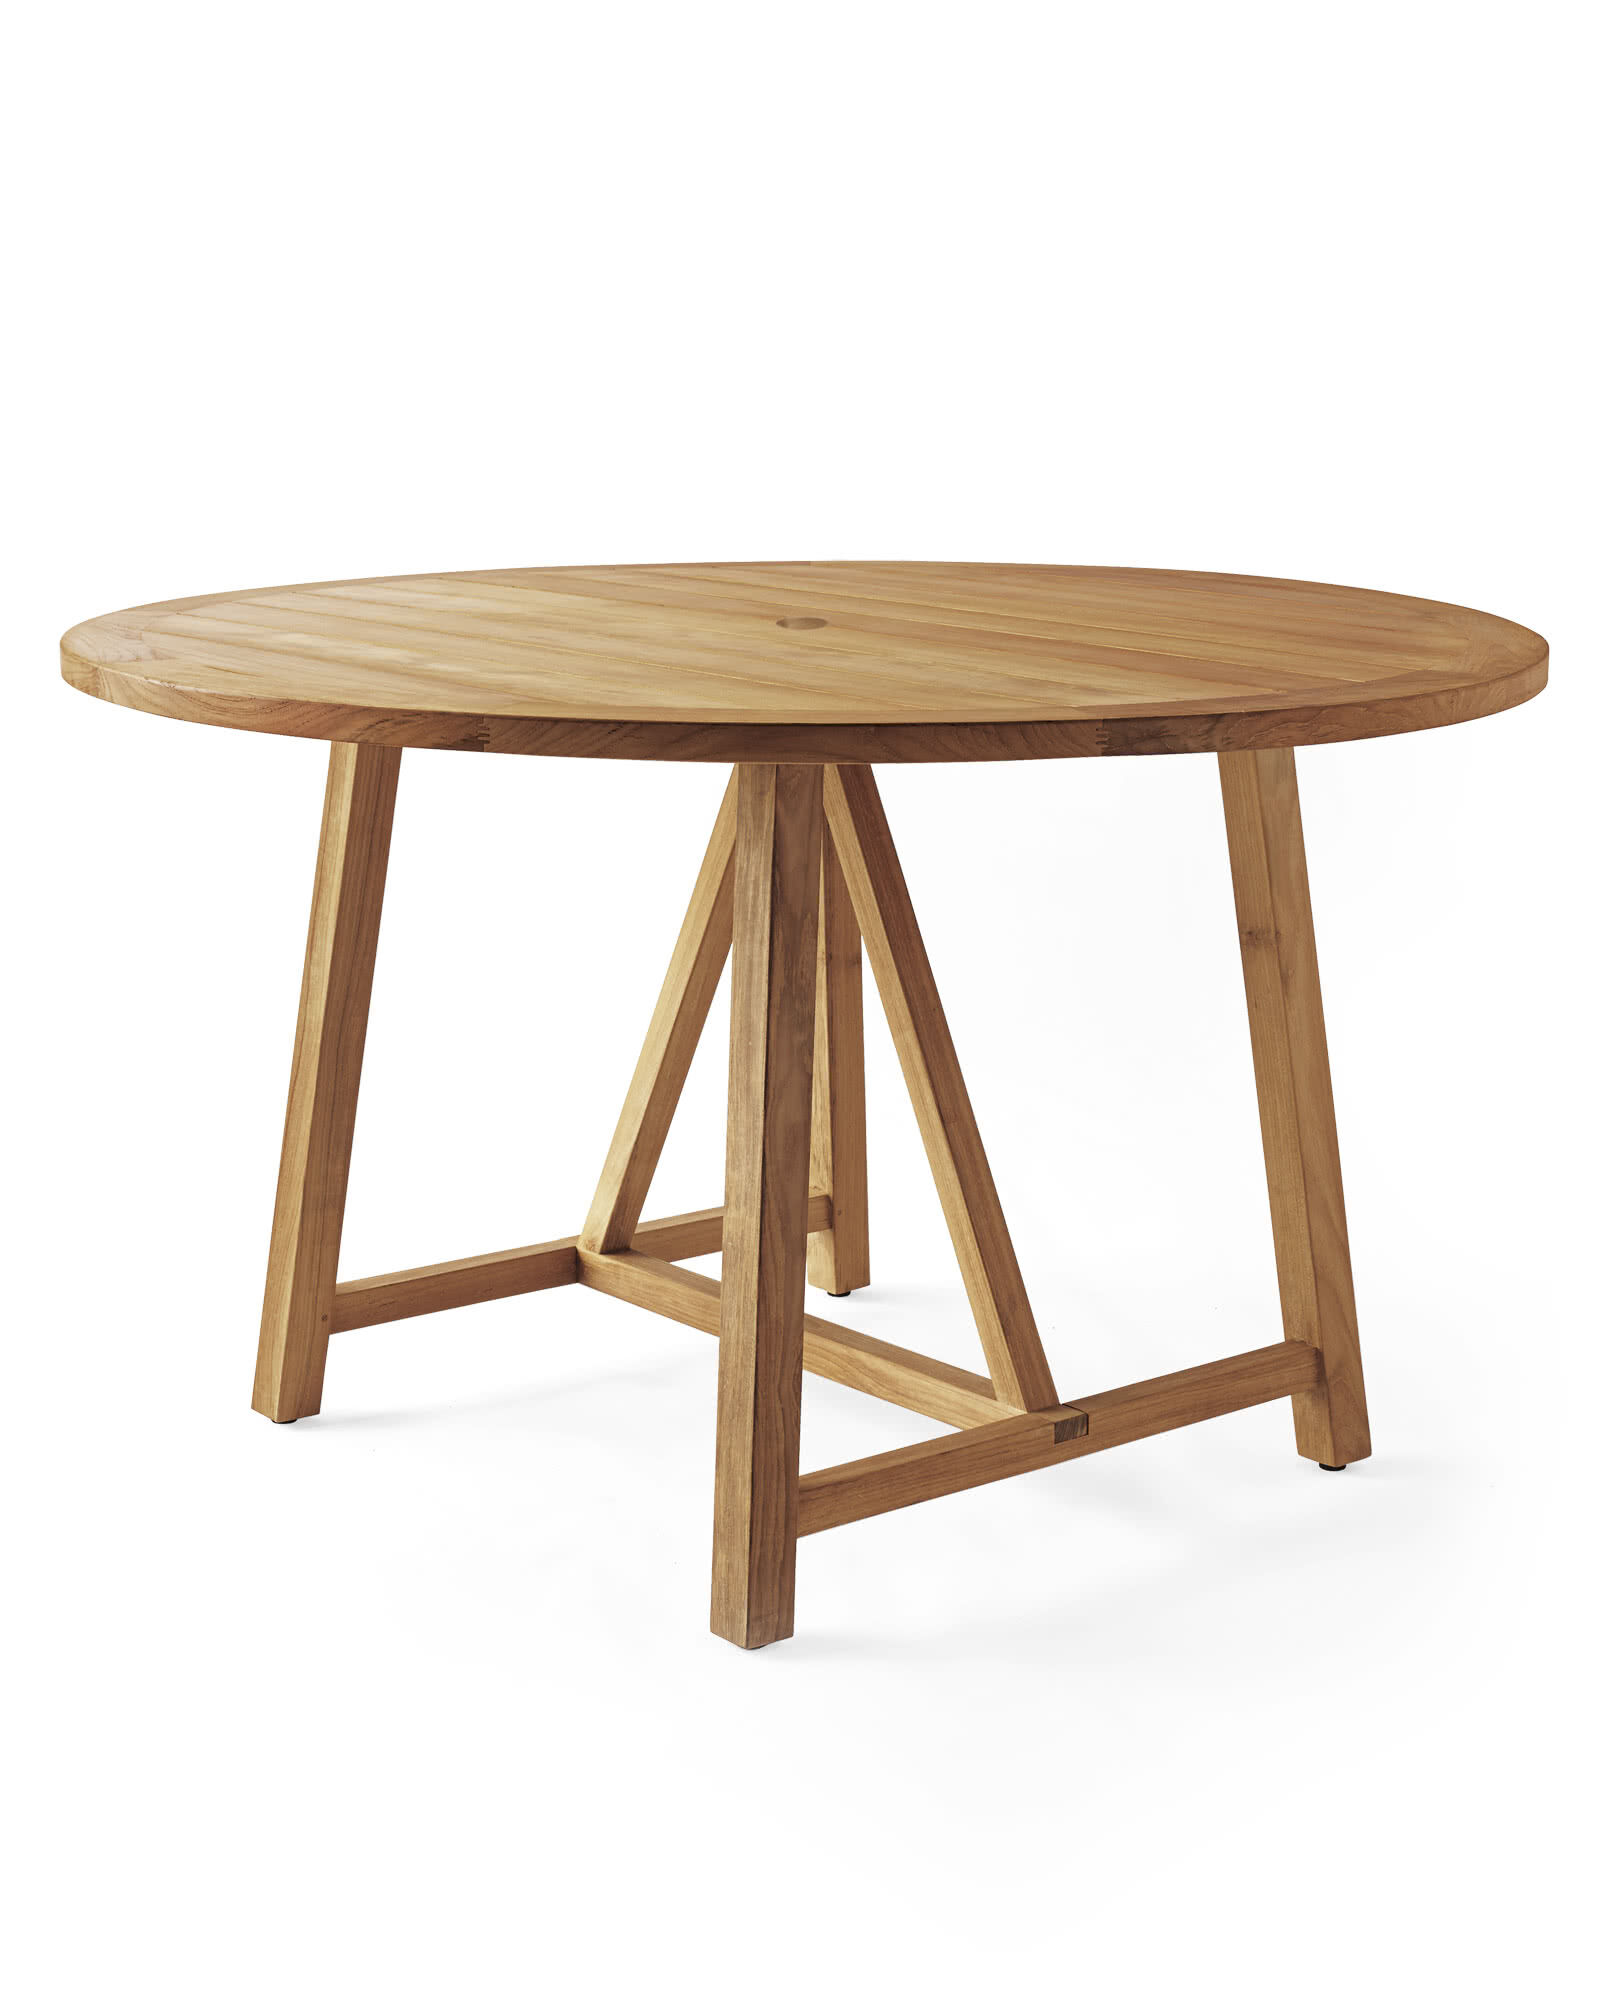 Crosby Teak Round Dining Table - Natural,